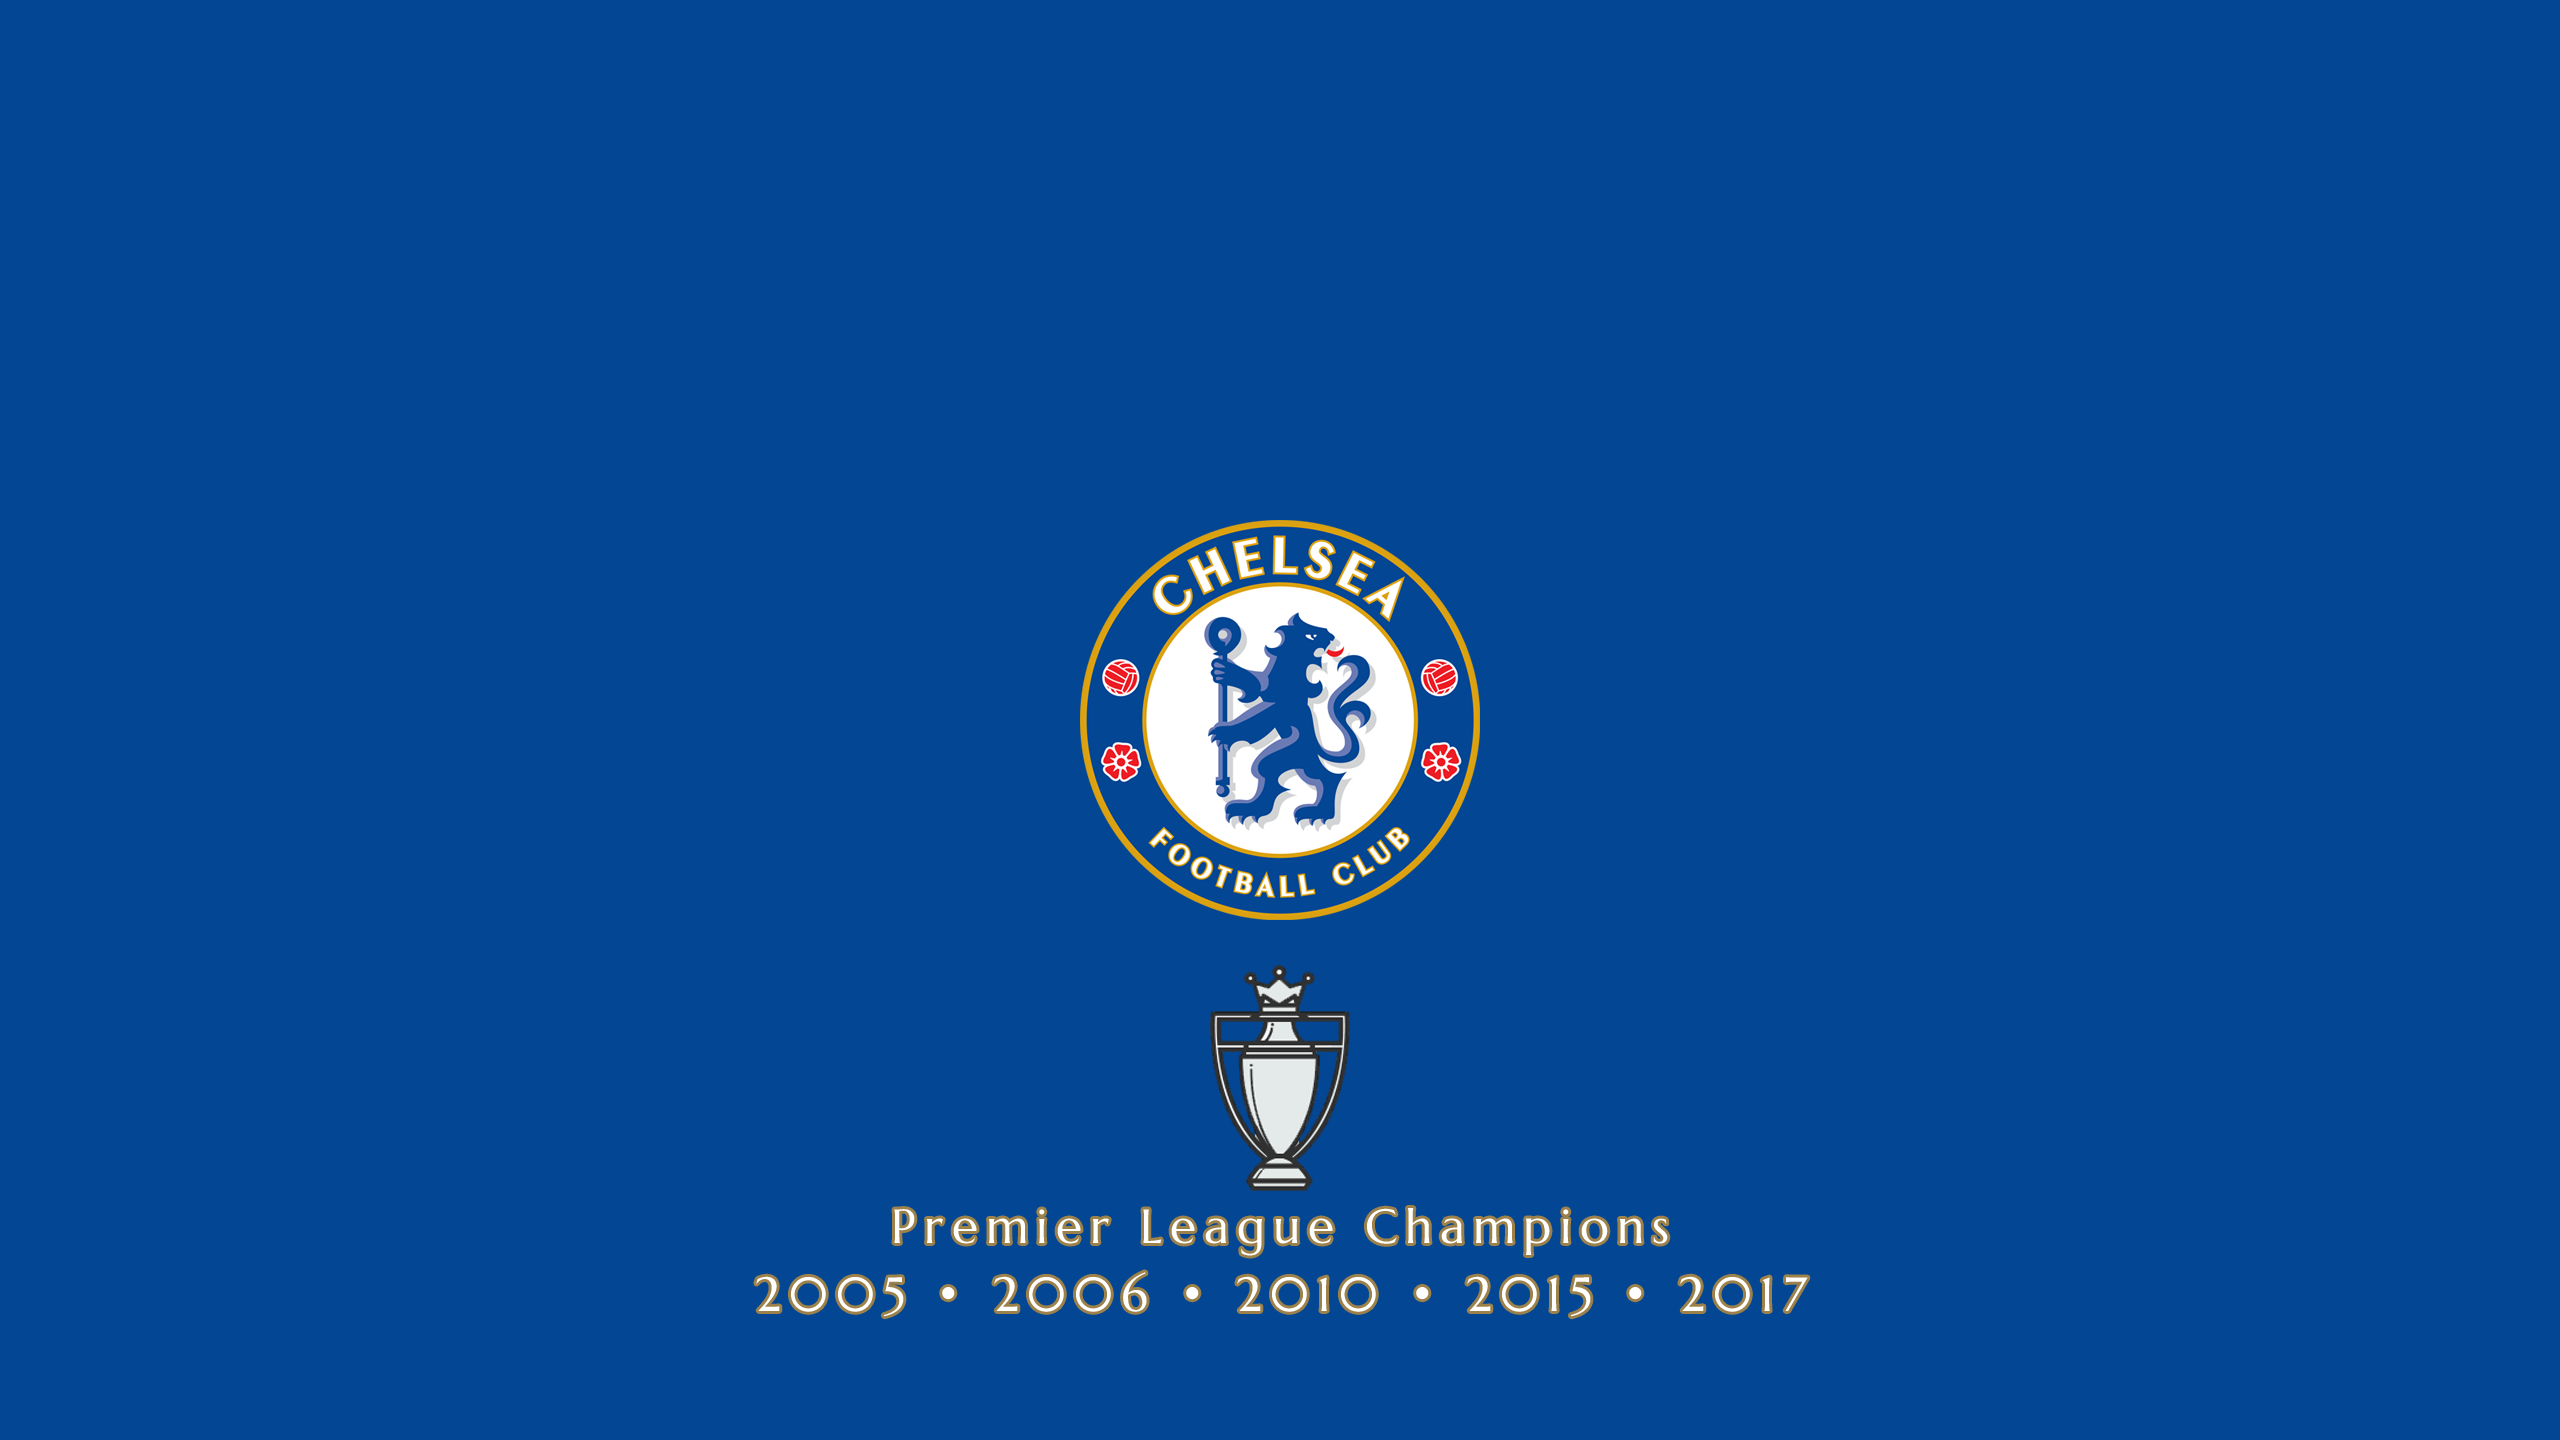 Chelsea FC - EPL Champs